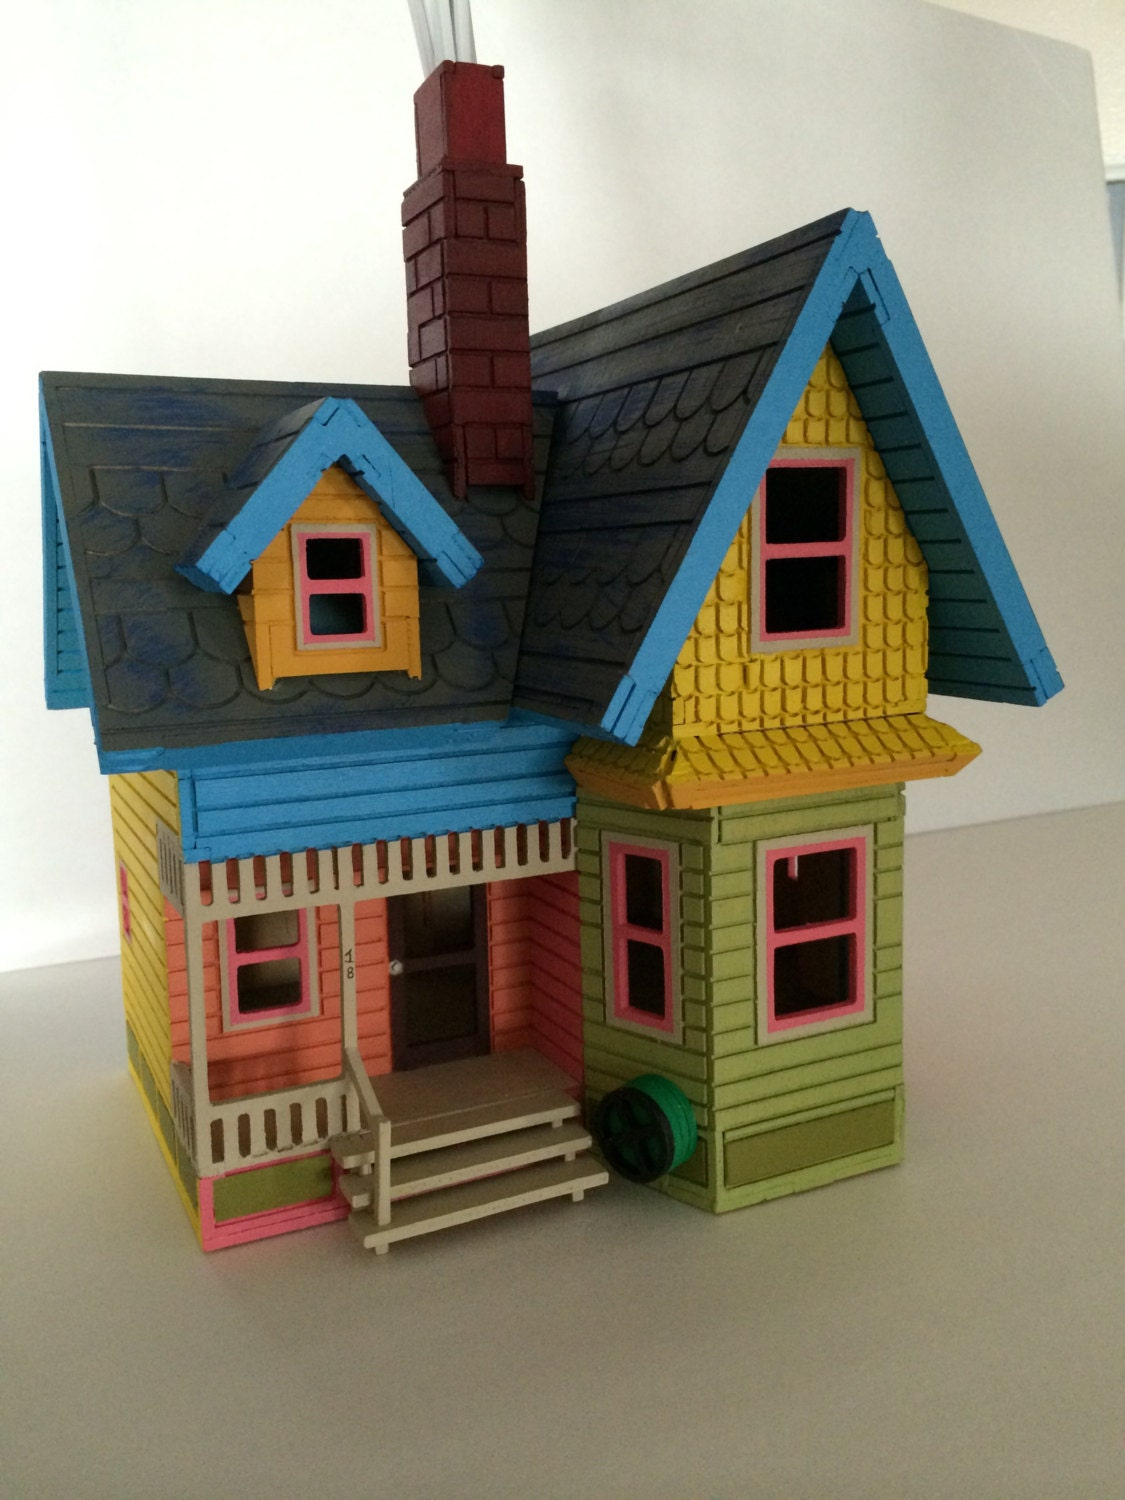 3d house puzzle from the movie up from disney by for Model house movie